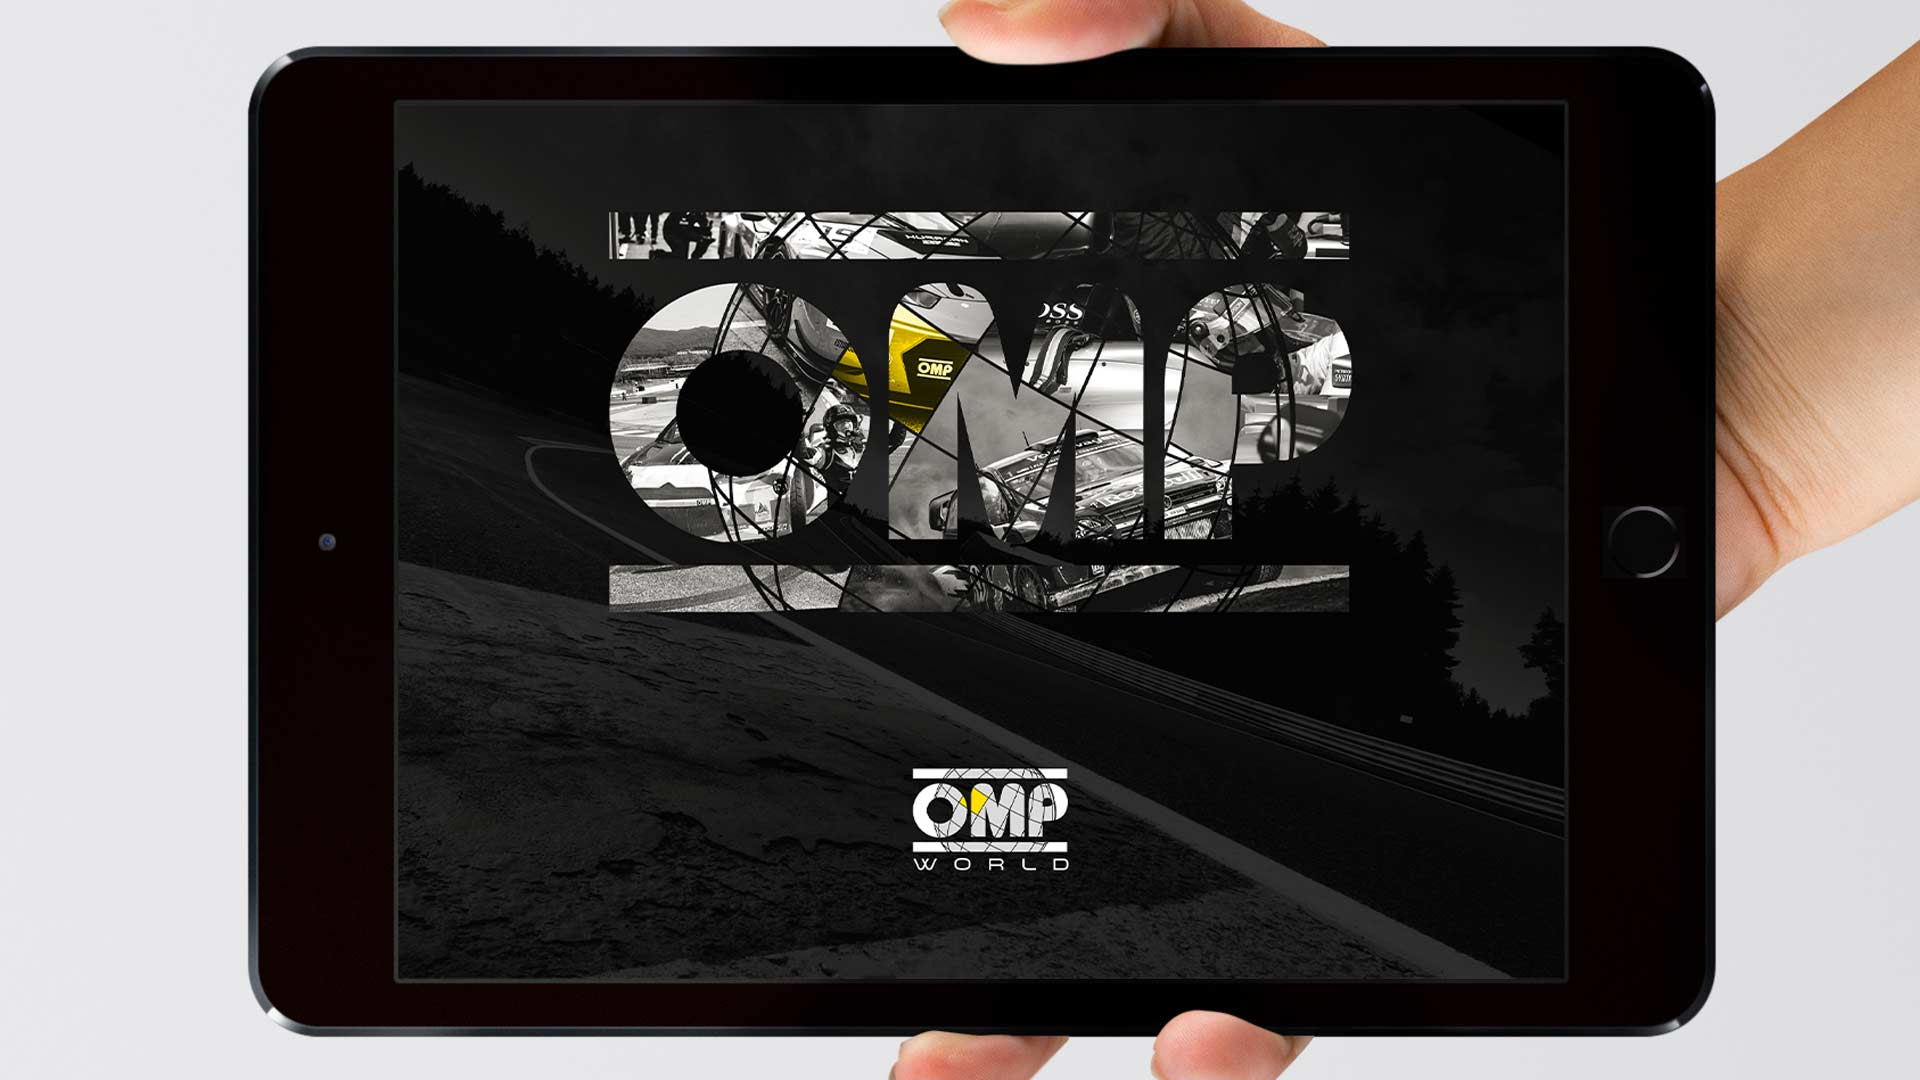 OMP official app: